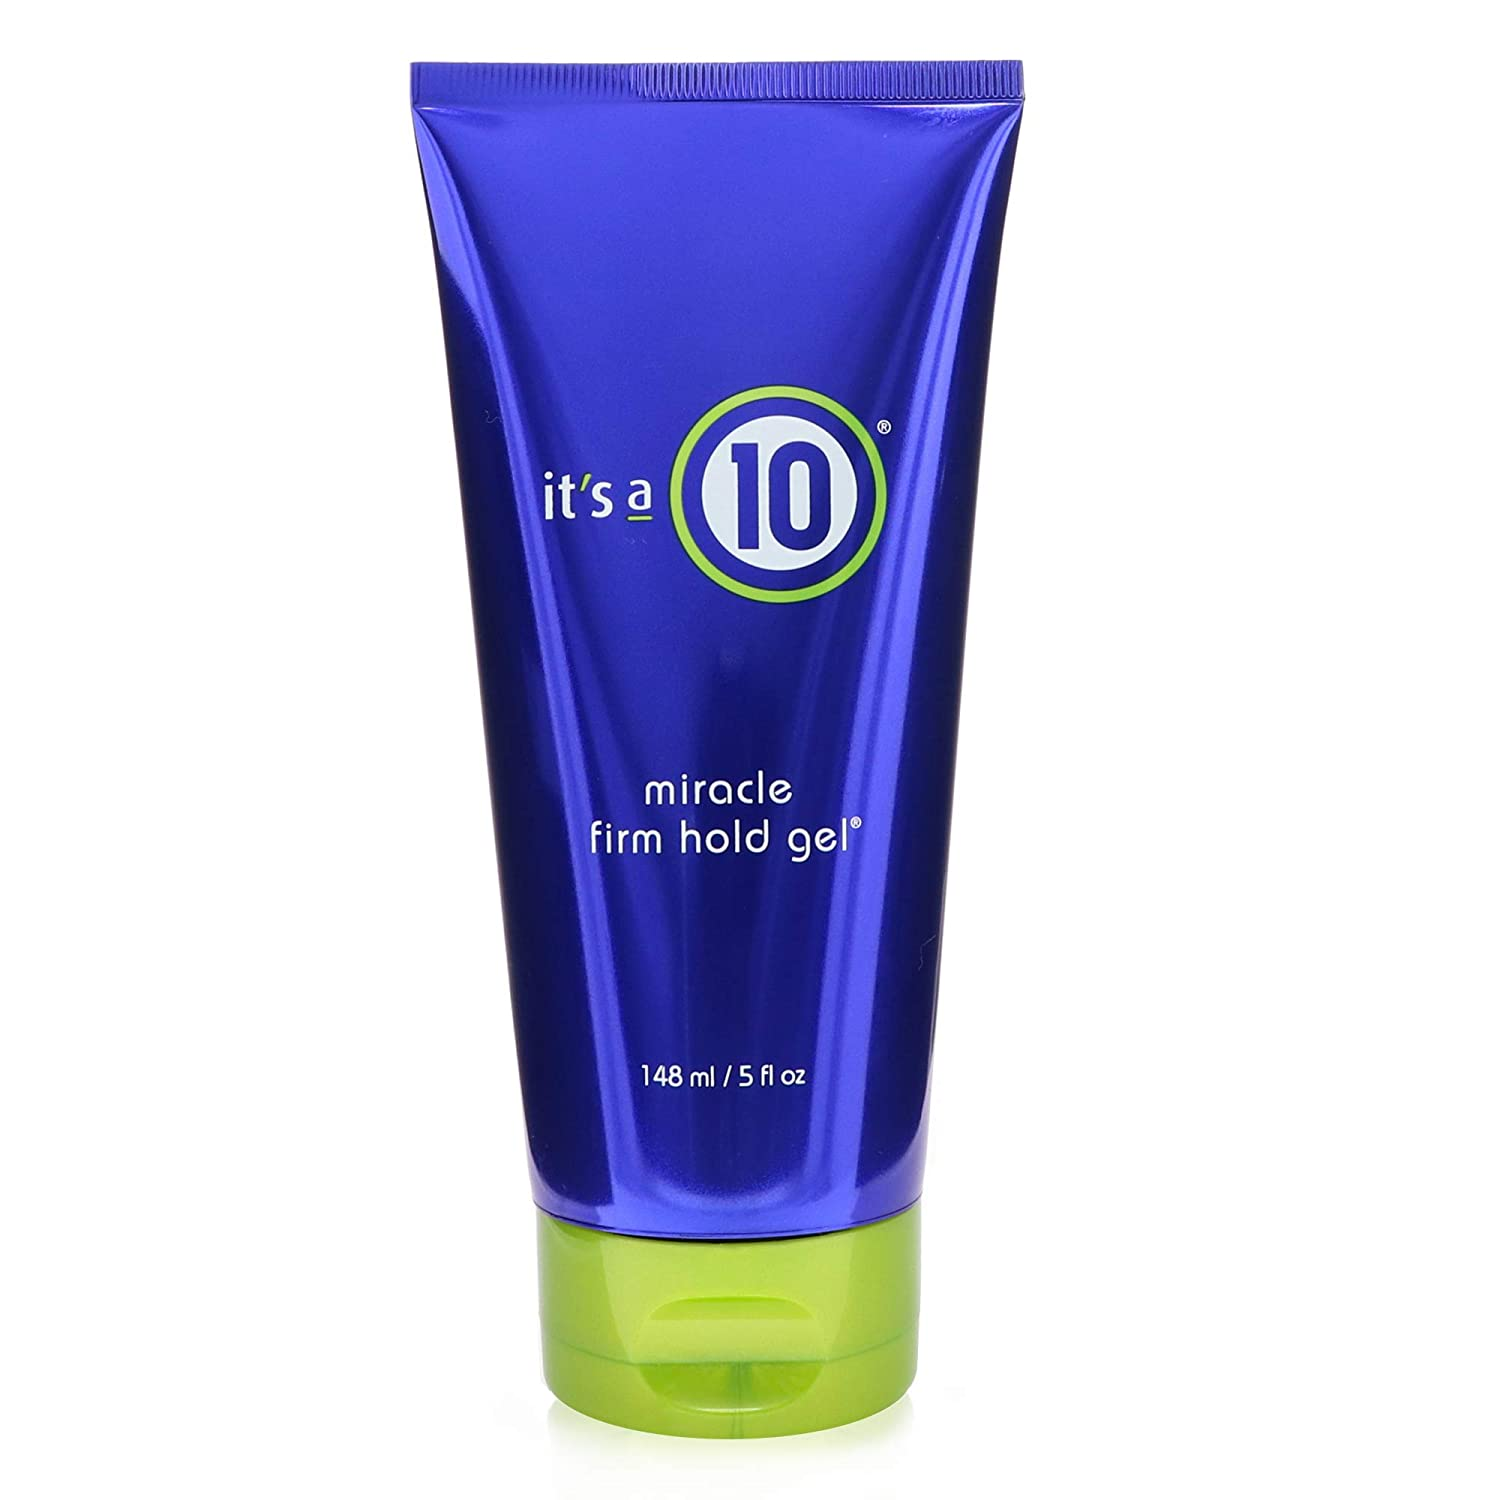 It's a 10 Haircare Miracle Firm Hold Gel, 5 fl. oz.